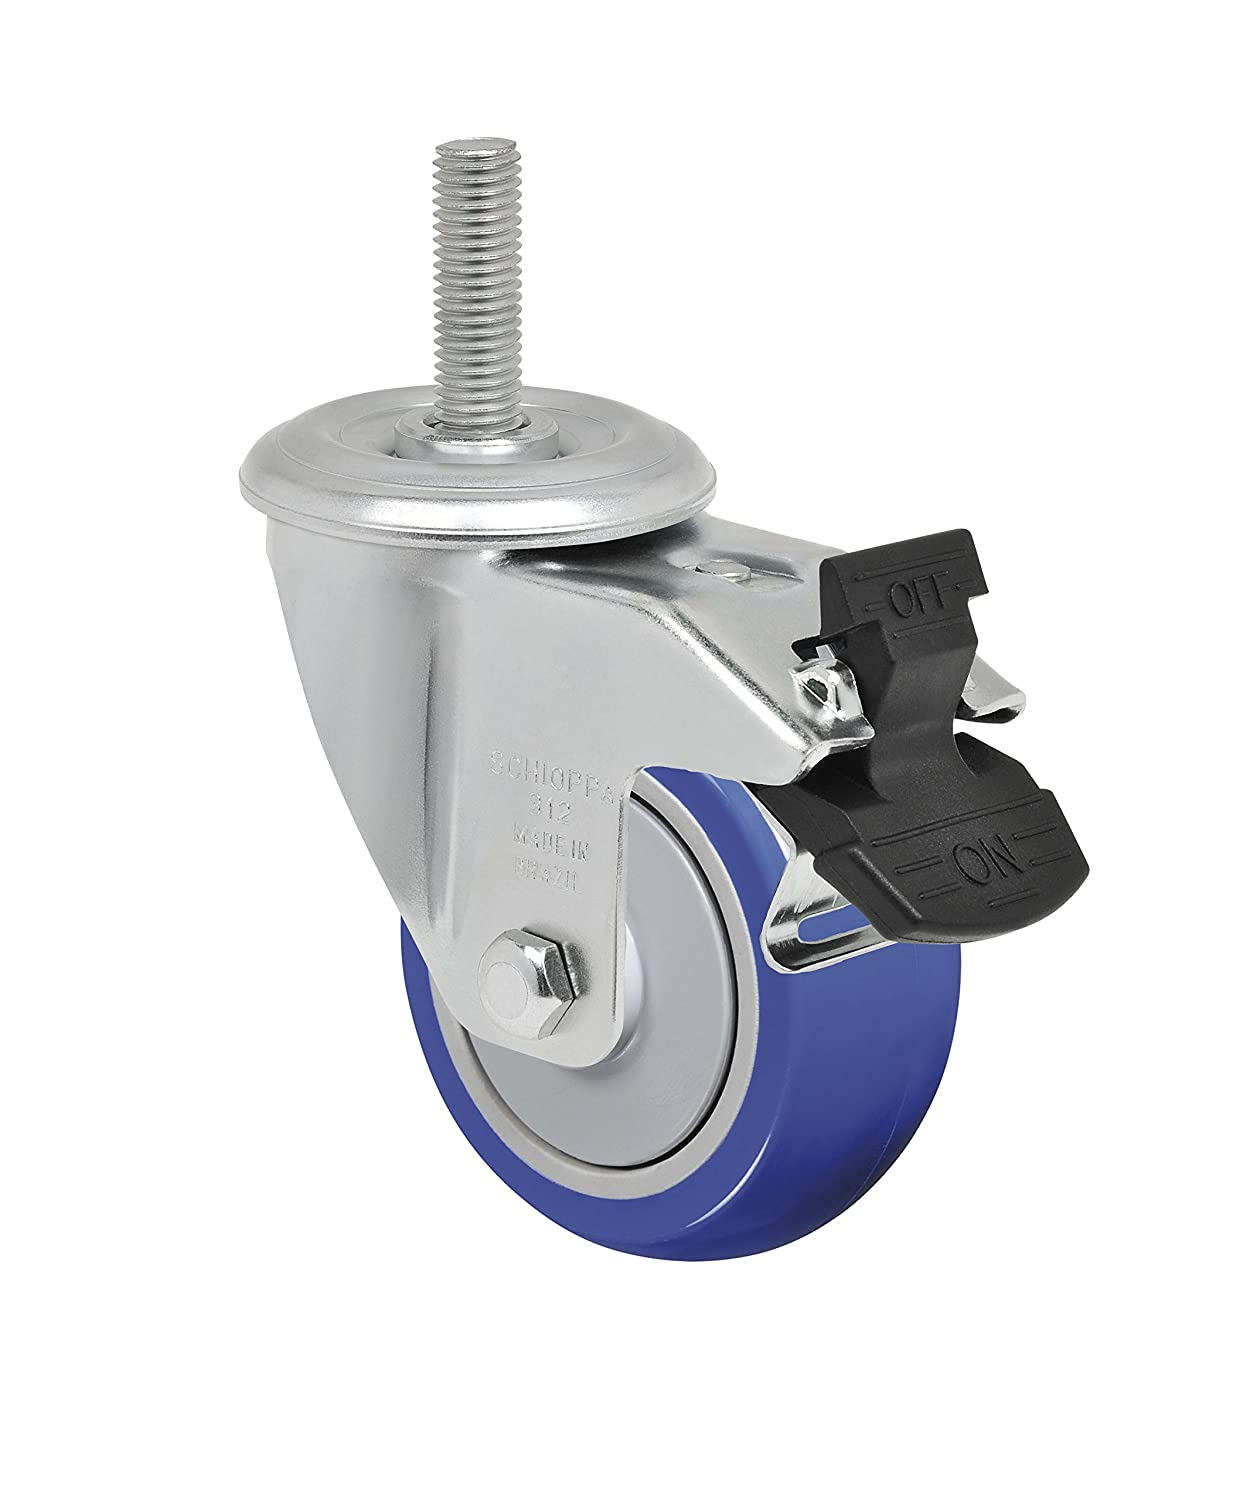 Schioppa L12 Series, GLEHH 312 TP G, 3 x 1-1/4 Swivel Caster with Total Lock Brake, Non-Marking Thermoplastic Compound Wheel, 150 lbs, 12 mm Diameter x 50 mm Length Threaded Stem